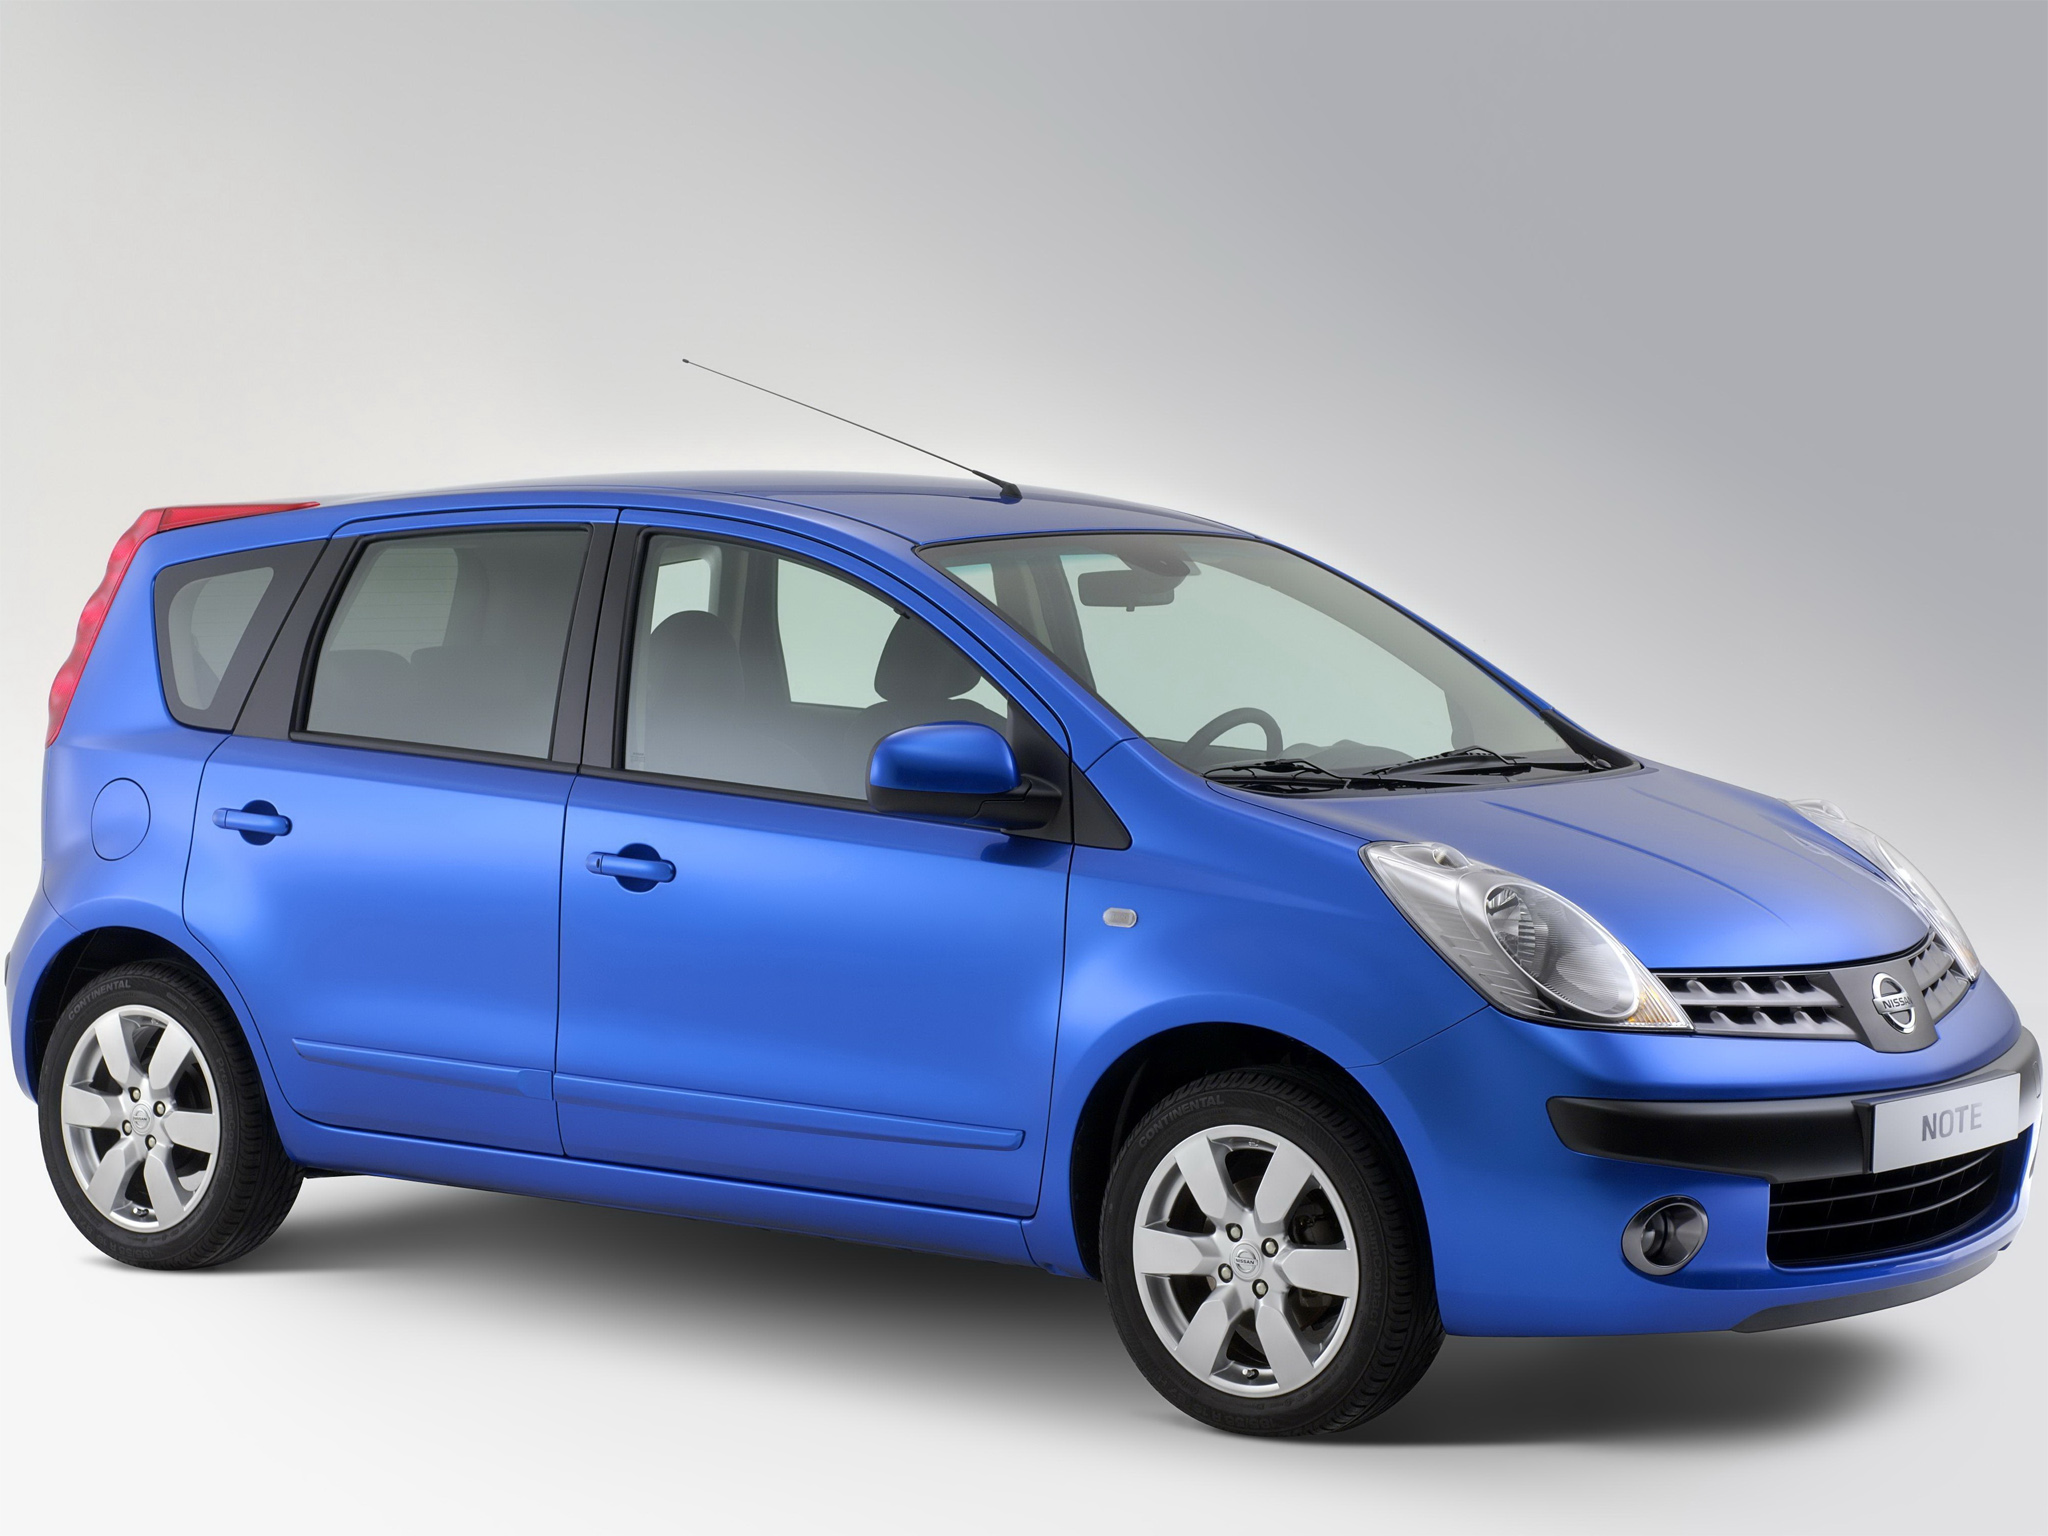 Nissan_note_(e11)_original